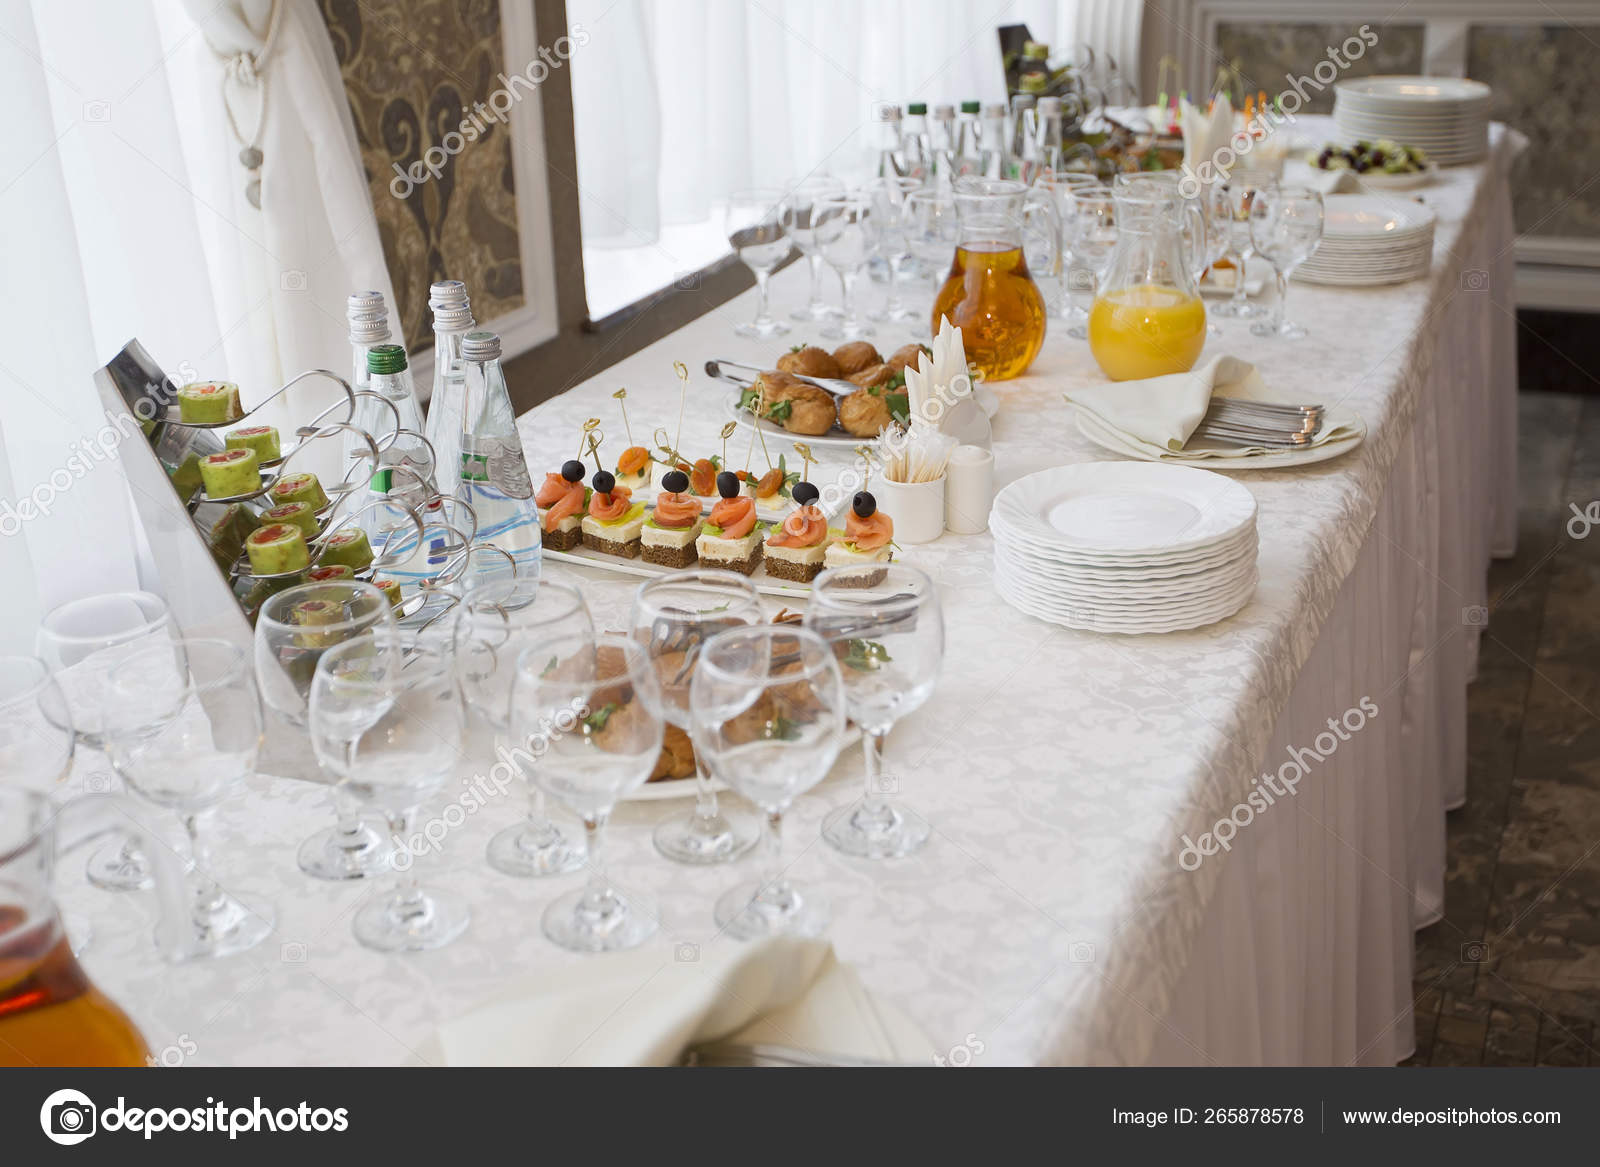 Picture of: Long White Buffet Table Stock Editorial Photo C Aspsvz 265878578